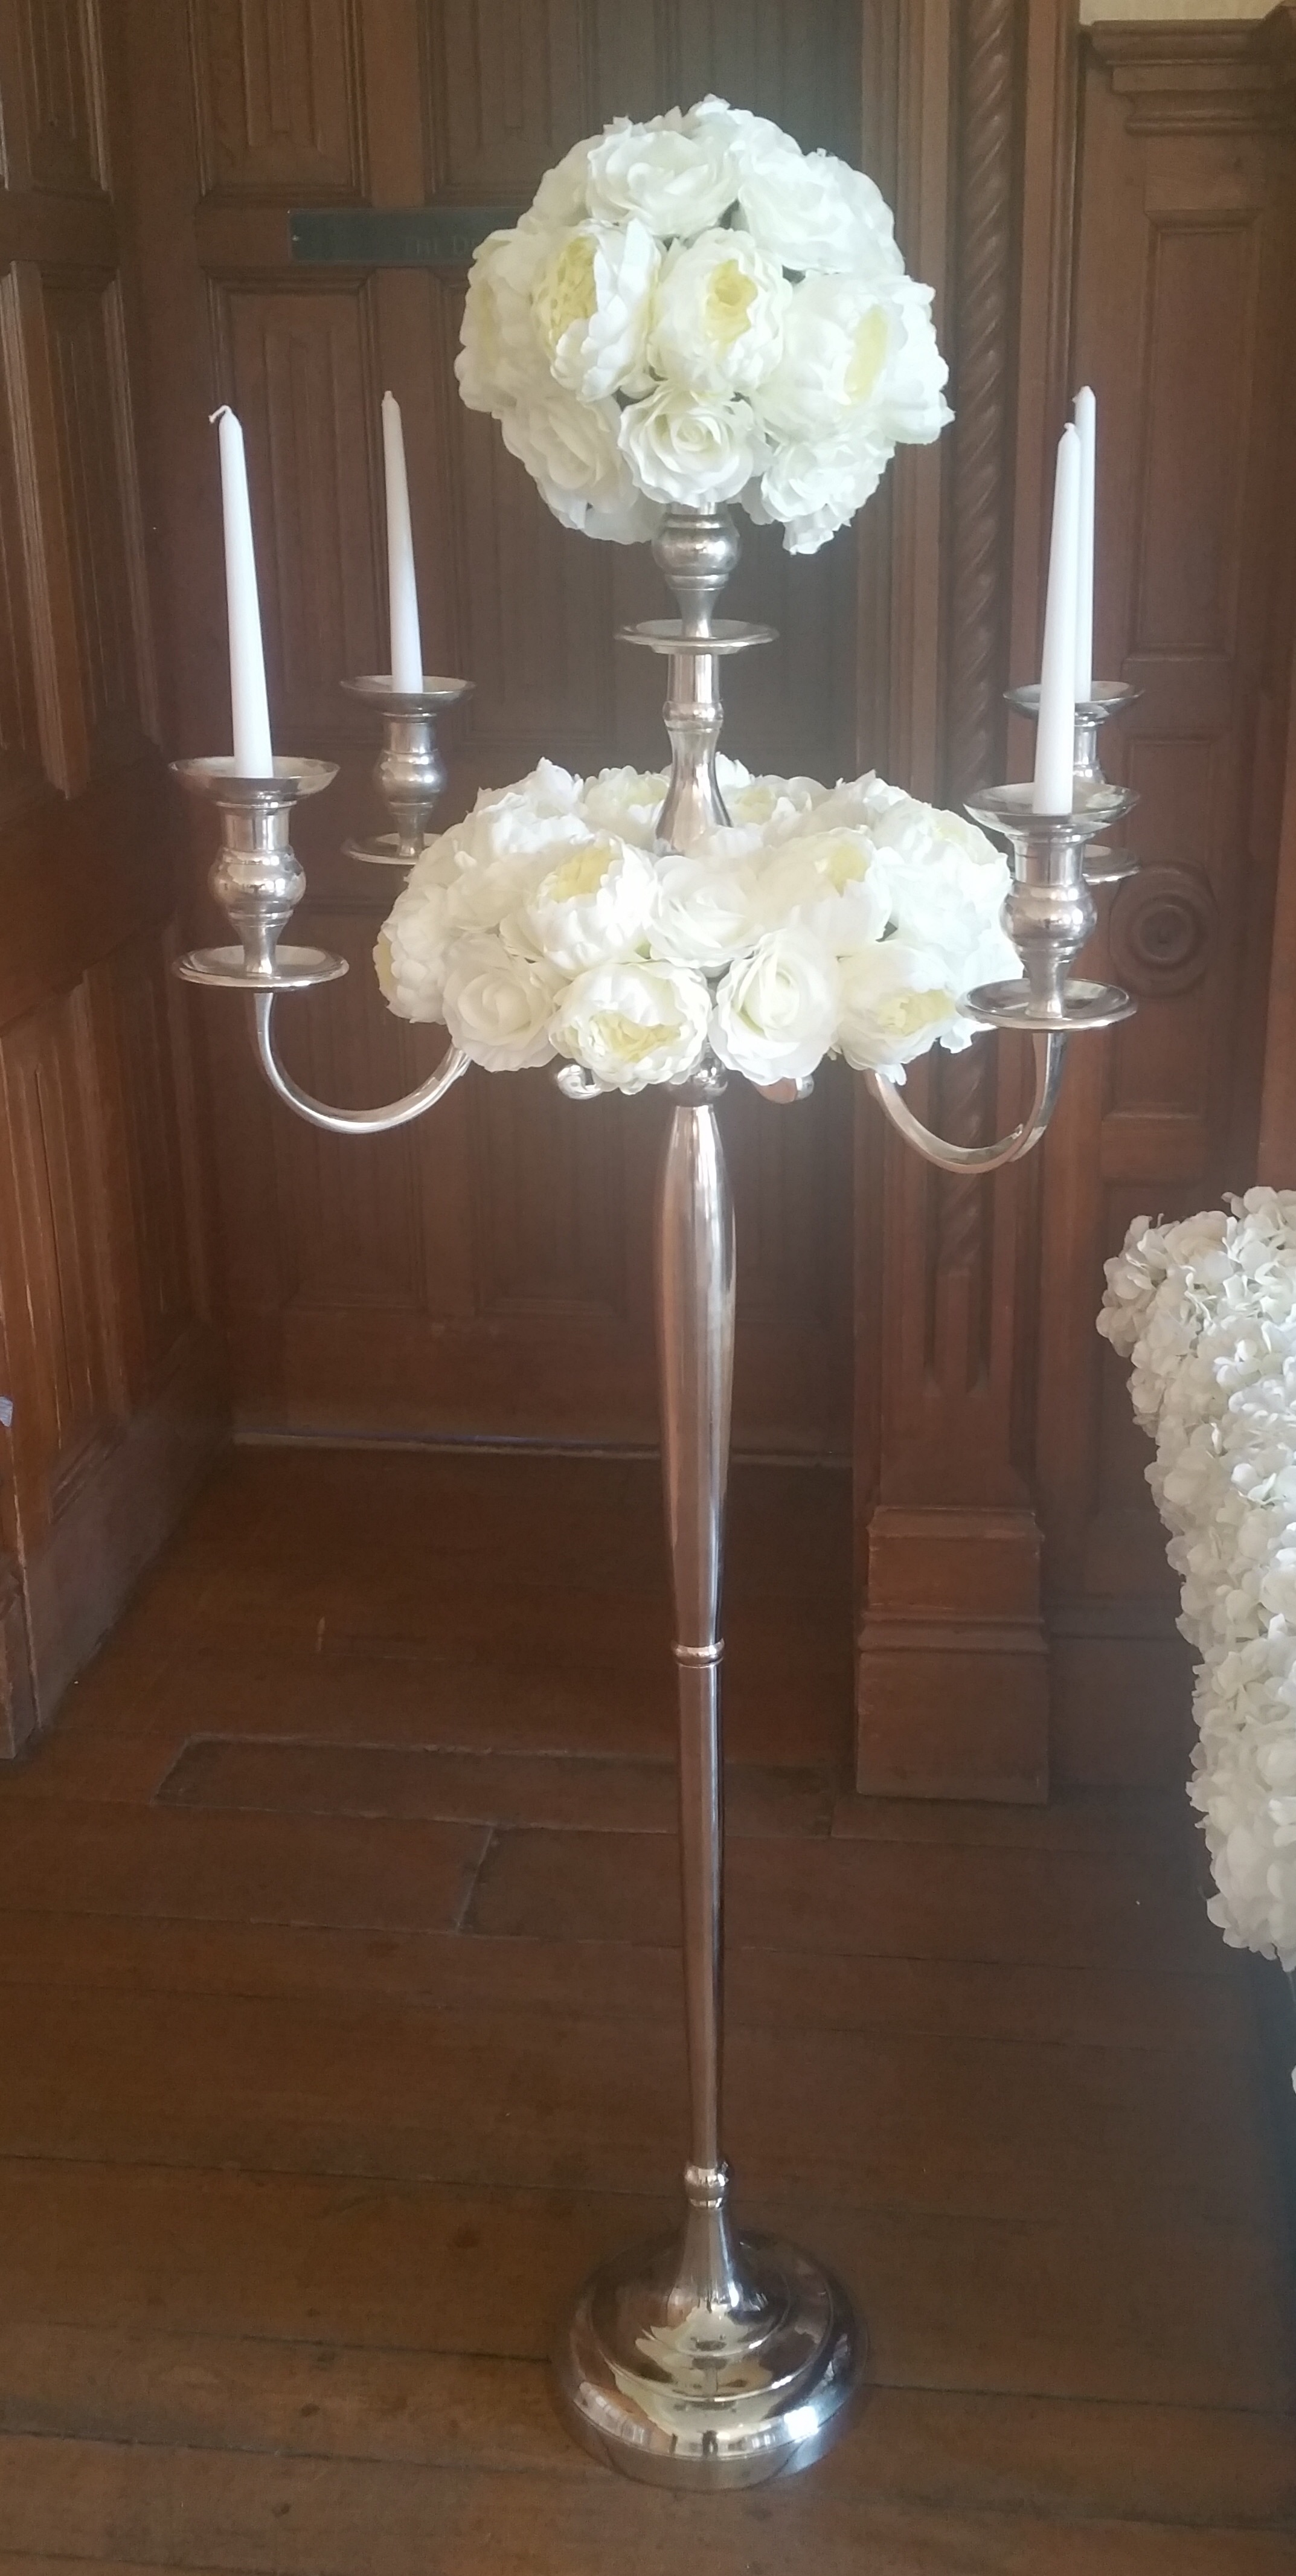 Floor standing candelabra (florals not included). From £50 each.